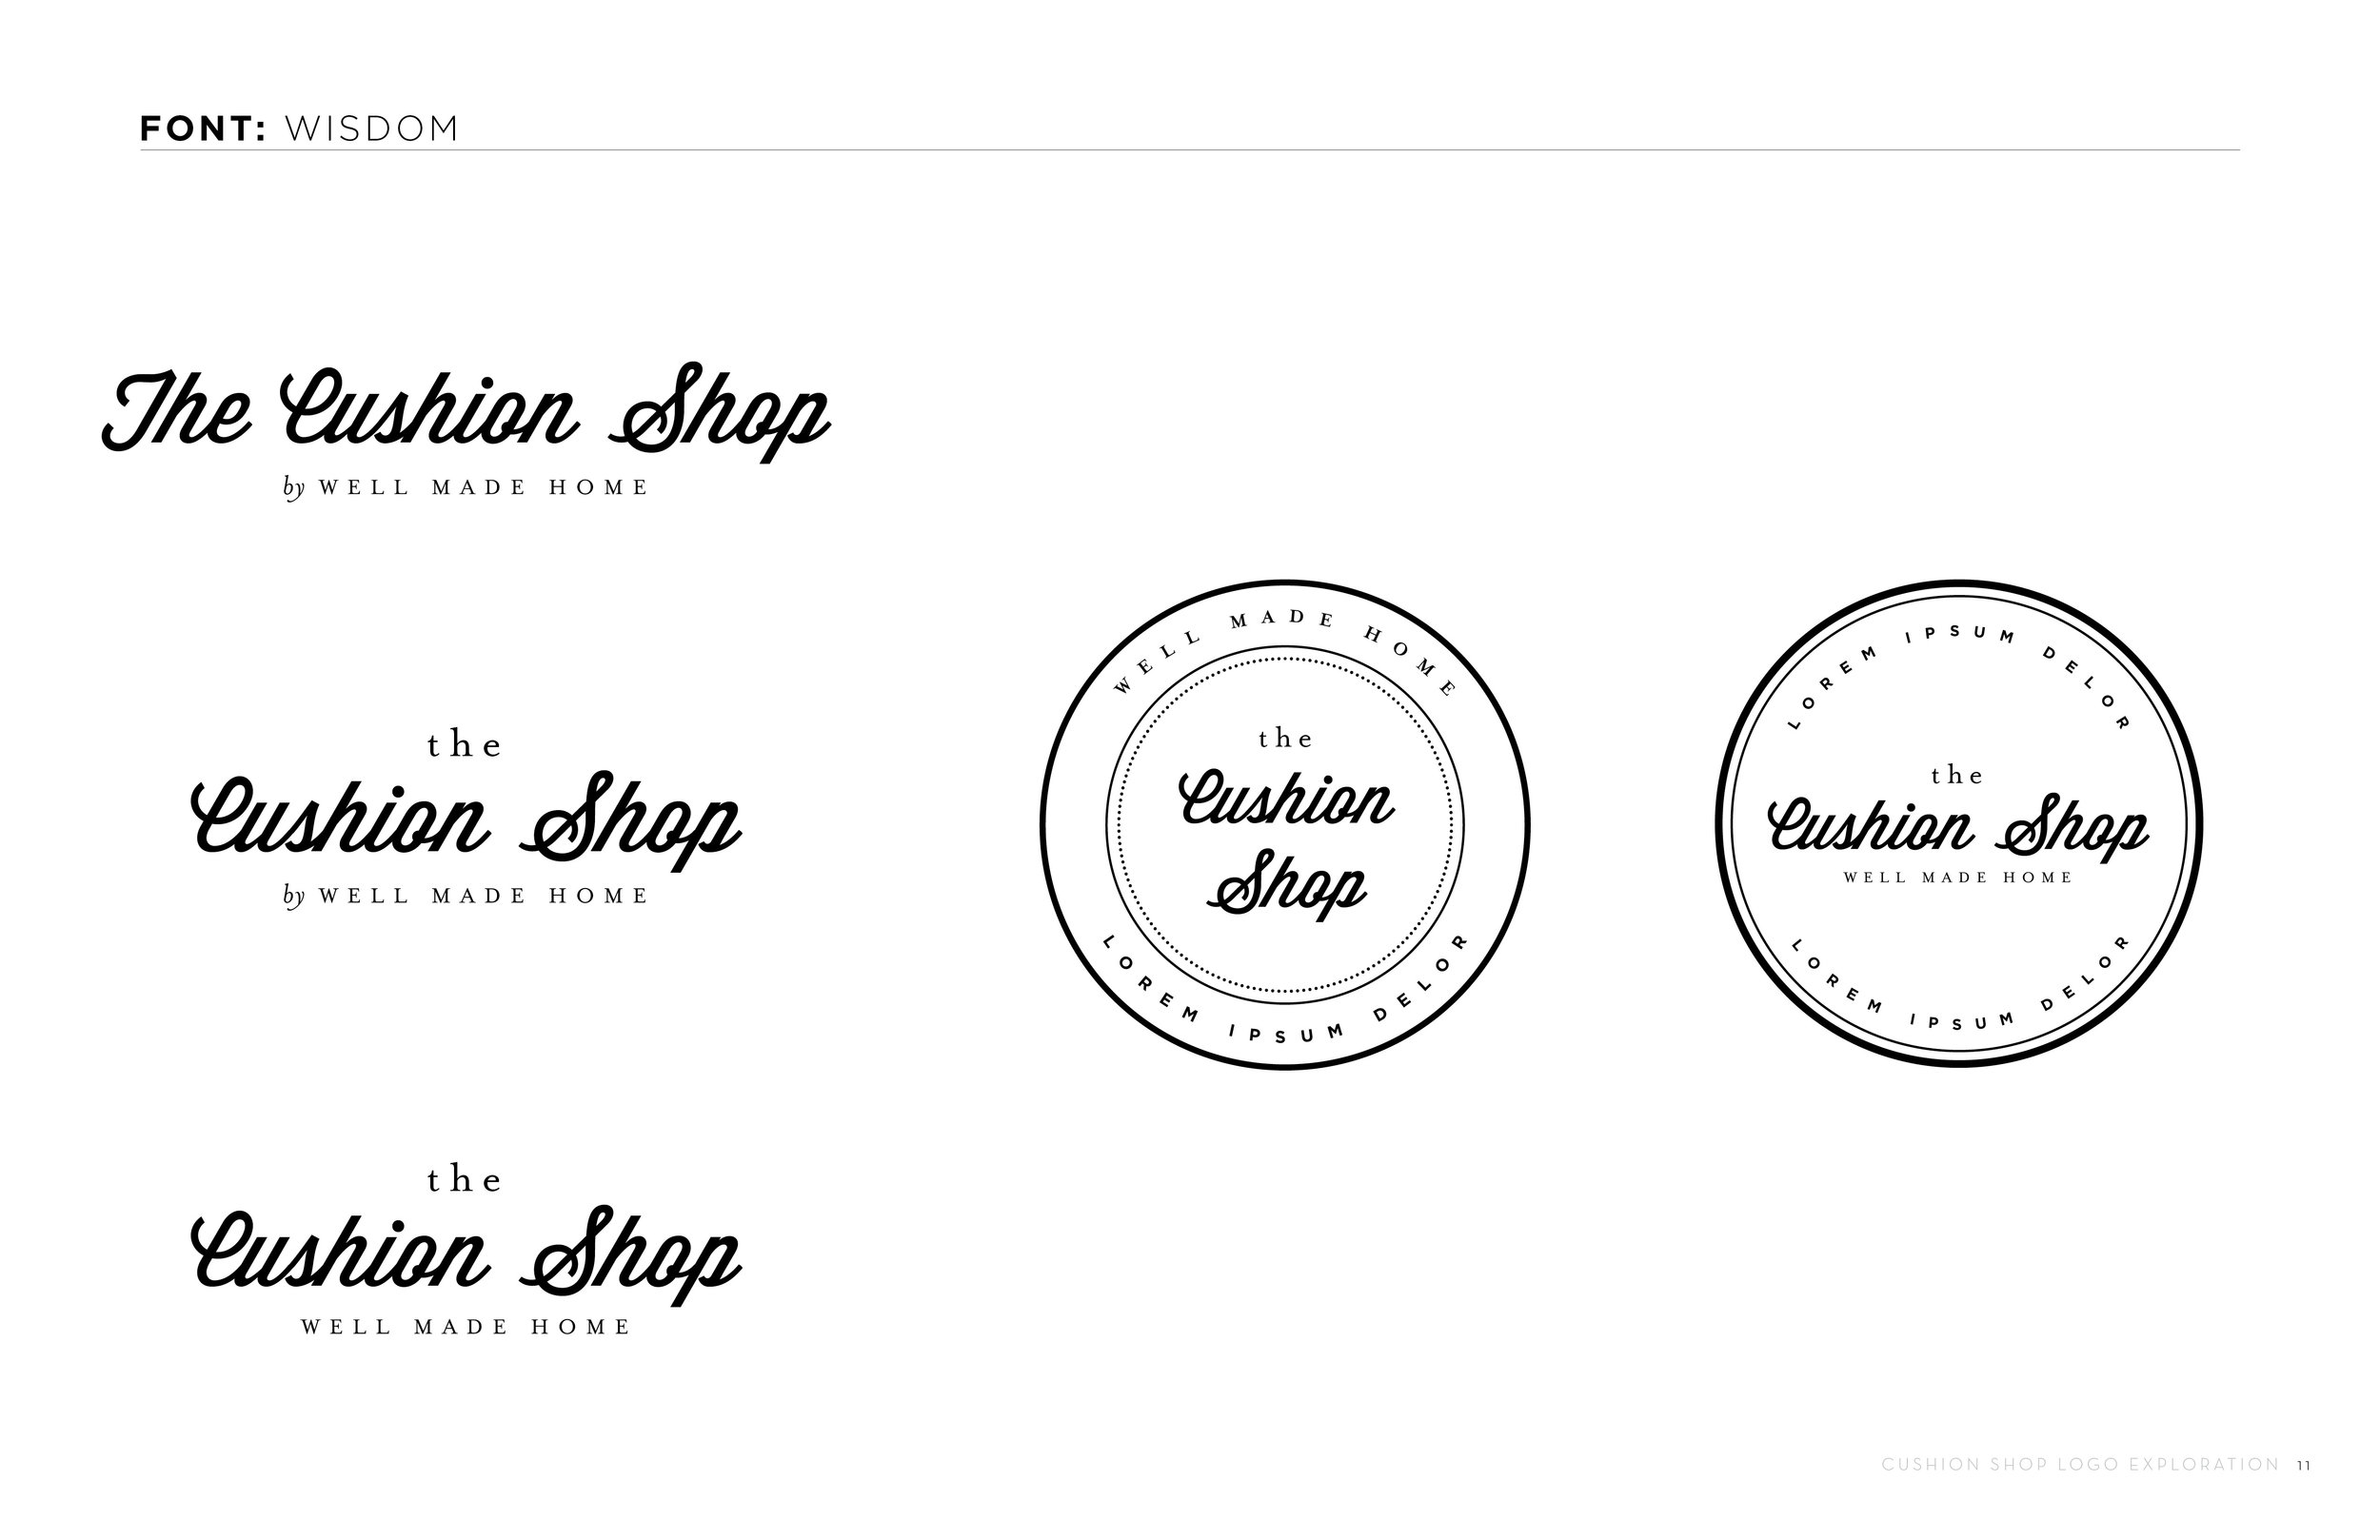 Cushion Shop_Logo Concepts_R10_11.jpg